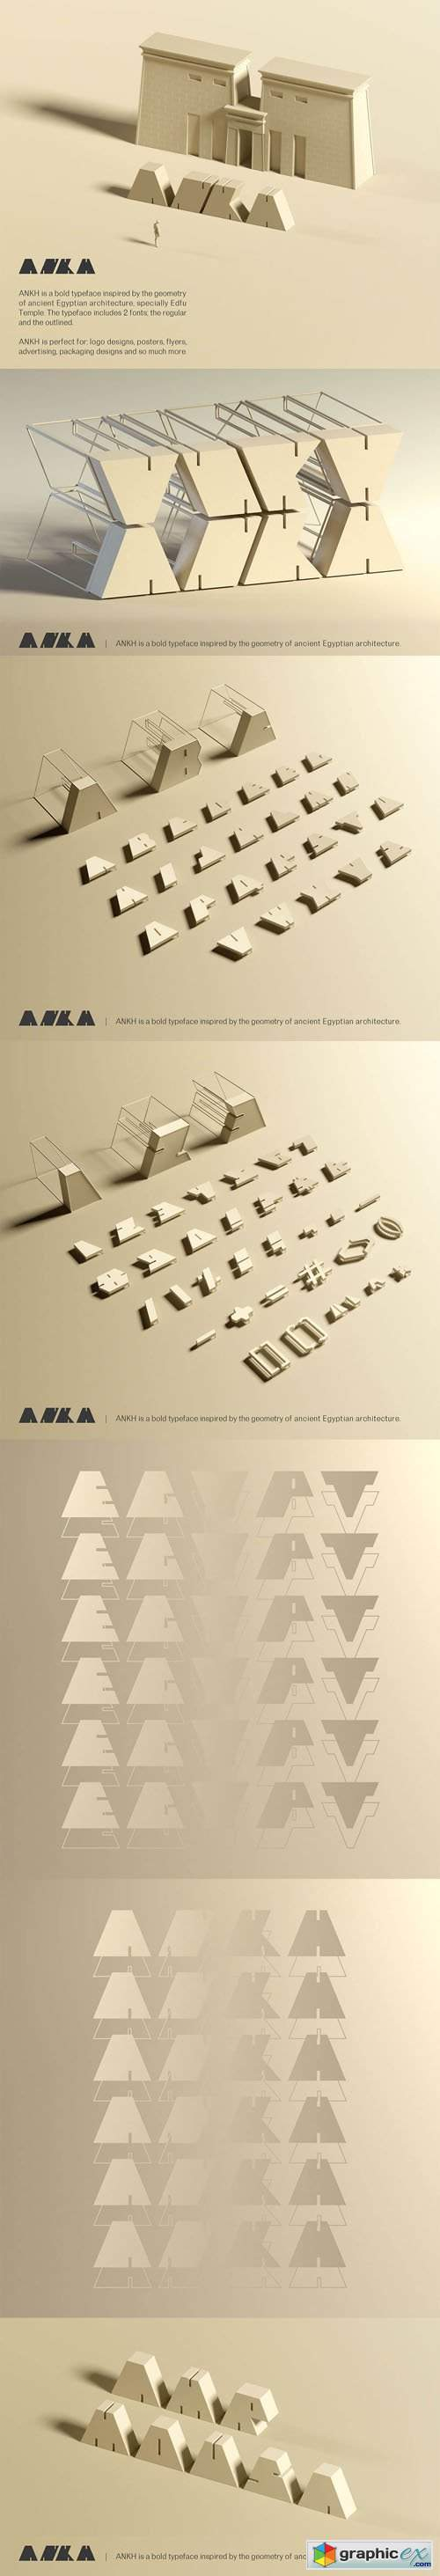 Ankh - Decorative Bold Typeface [2-Weights]